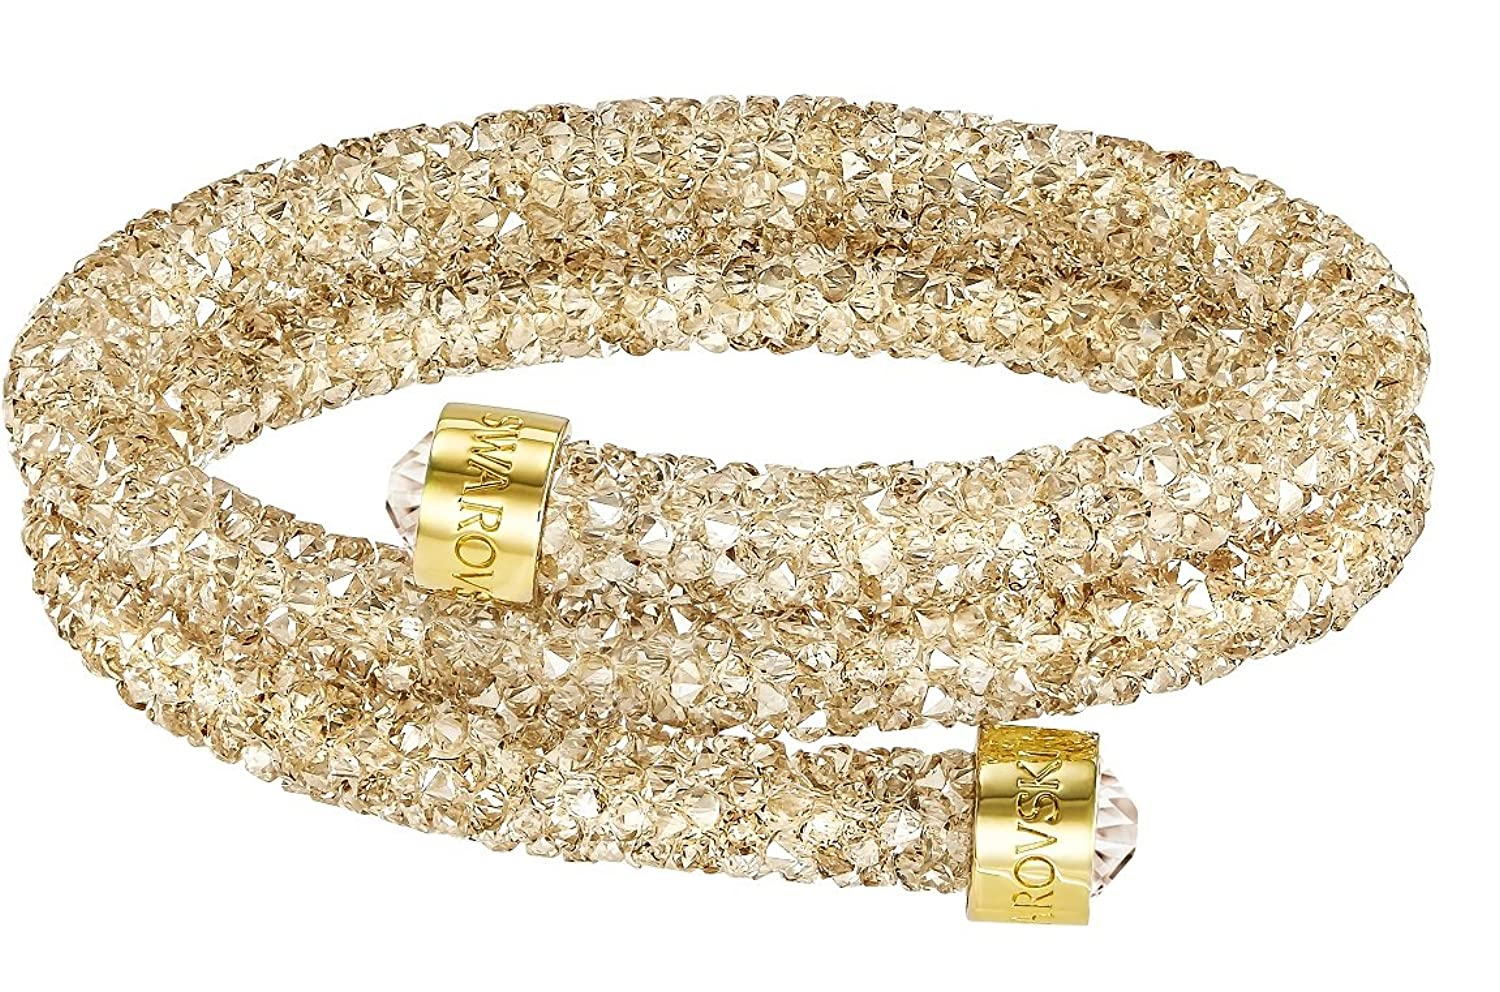 Swarovski Golden Double Crystaldust Bangle